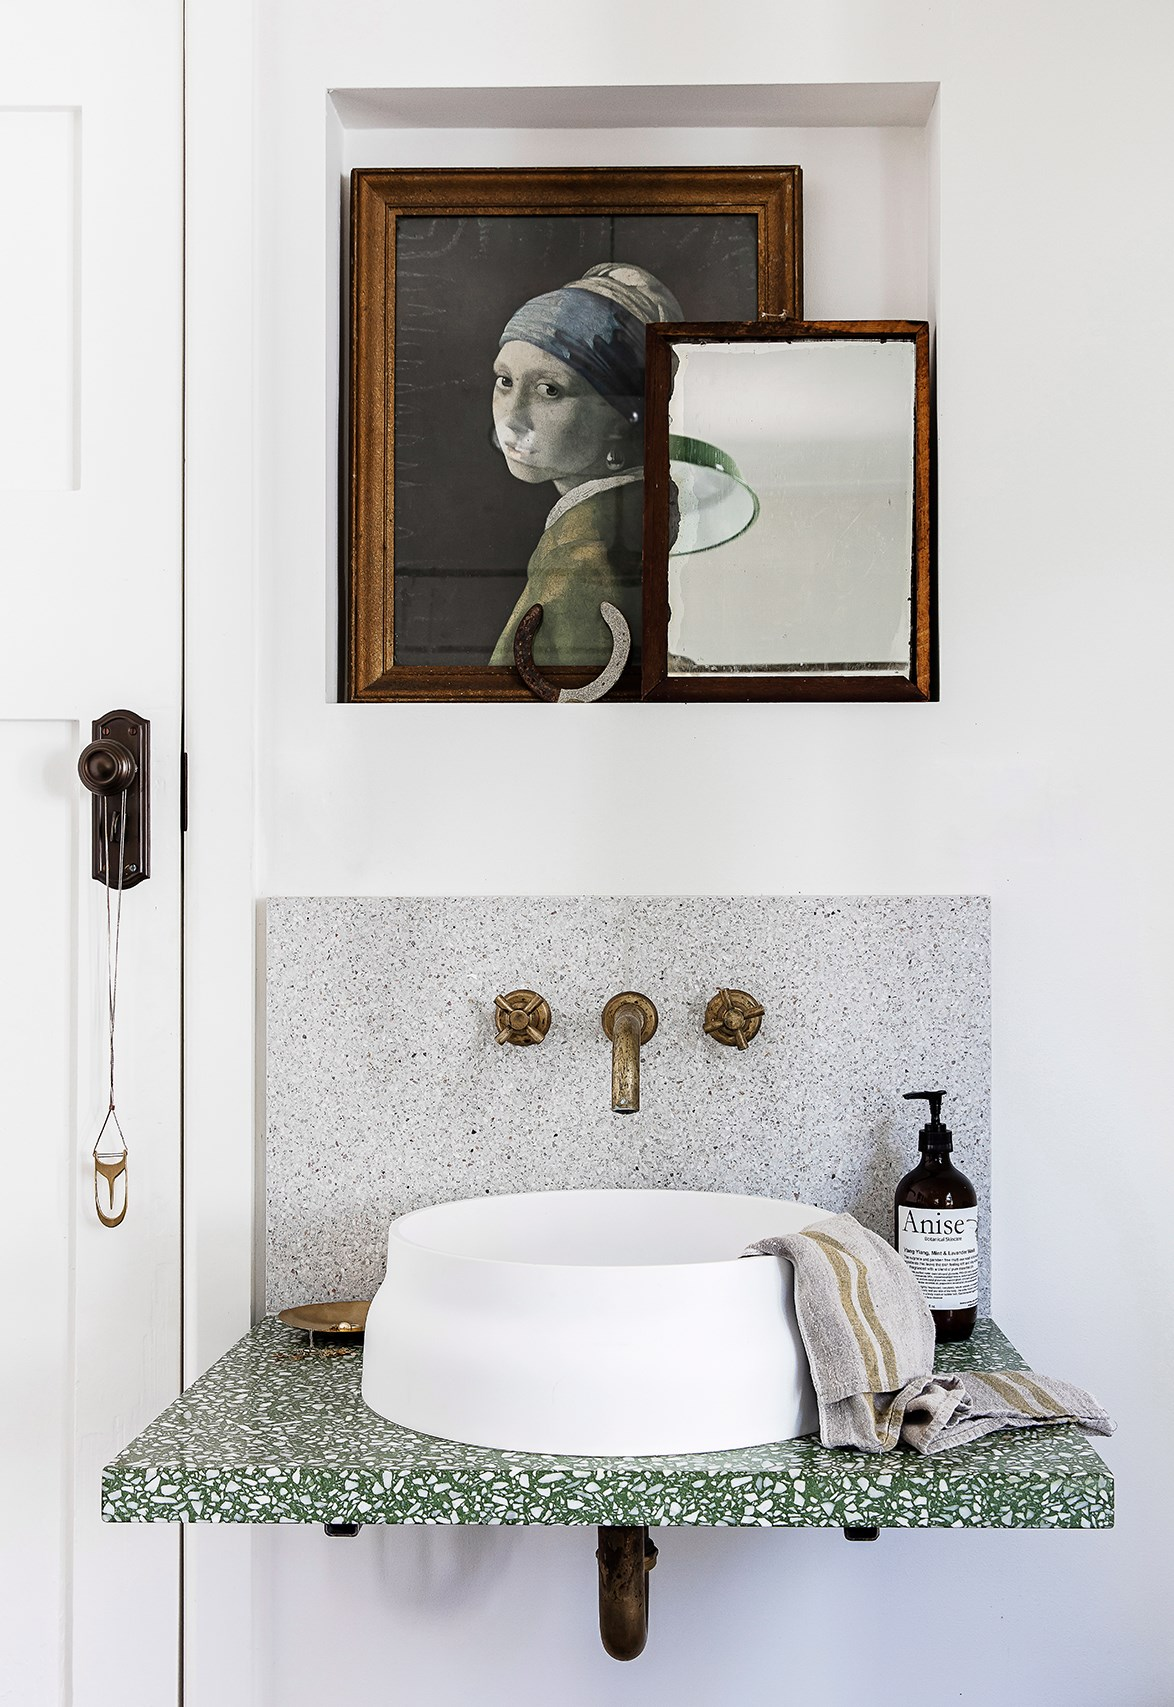 "**Terrazzo** - Marble was finally knocked off its pedestal this year as the most stylish interior surface by an unlikely contender: terrazzo. [Terrazzo has been all over bathrooms](https://www.homestolove.com.au/terrazzo-bathrooms-19359|target=""_blank"") this year, from flooring to walls, splashbacks and work surfaces. *Photo: Maree Homer / bauersyndication.com.au*"